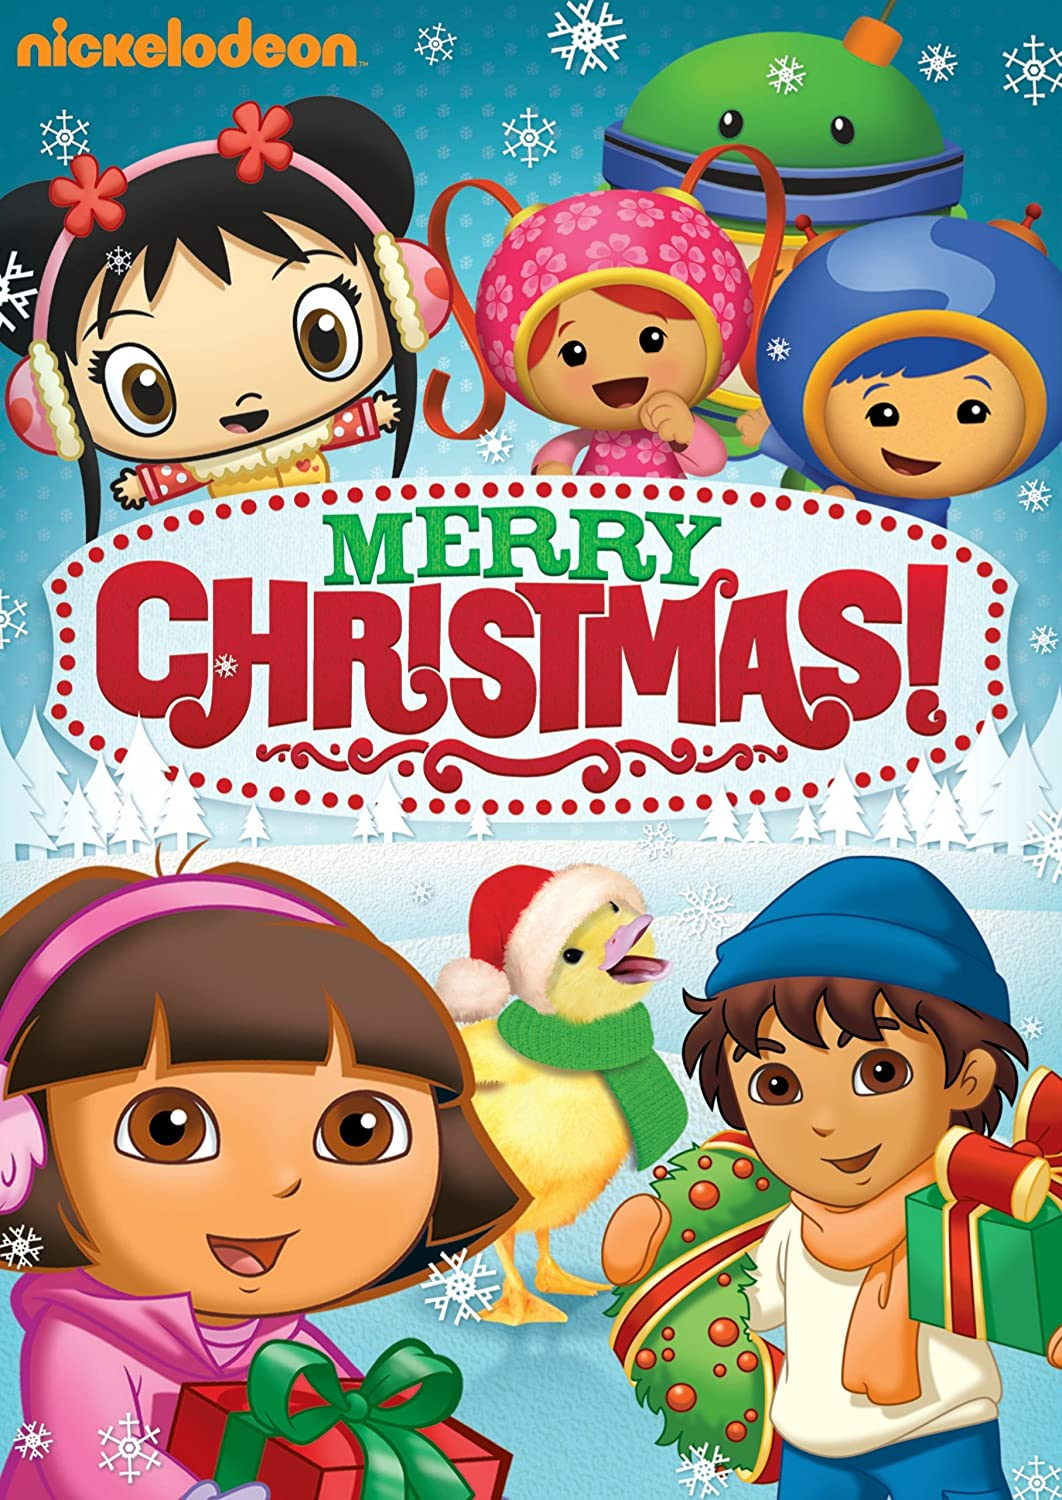 http://www.amazon.com/Nickelodeon-Favorites-Merry-Christmas/dp/B005DKS1SU/